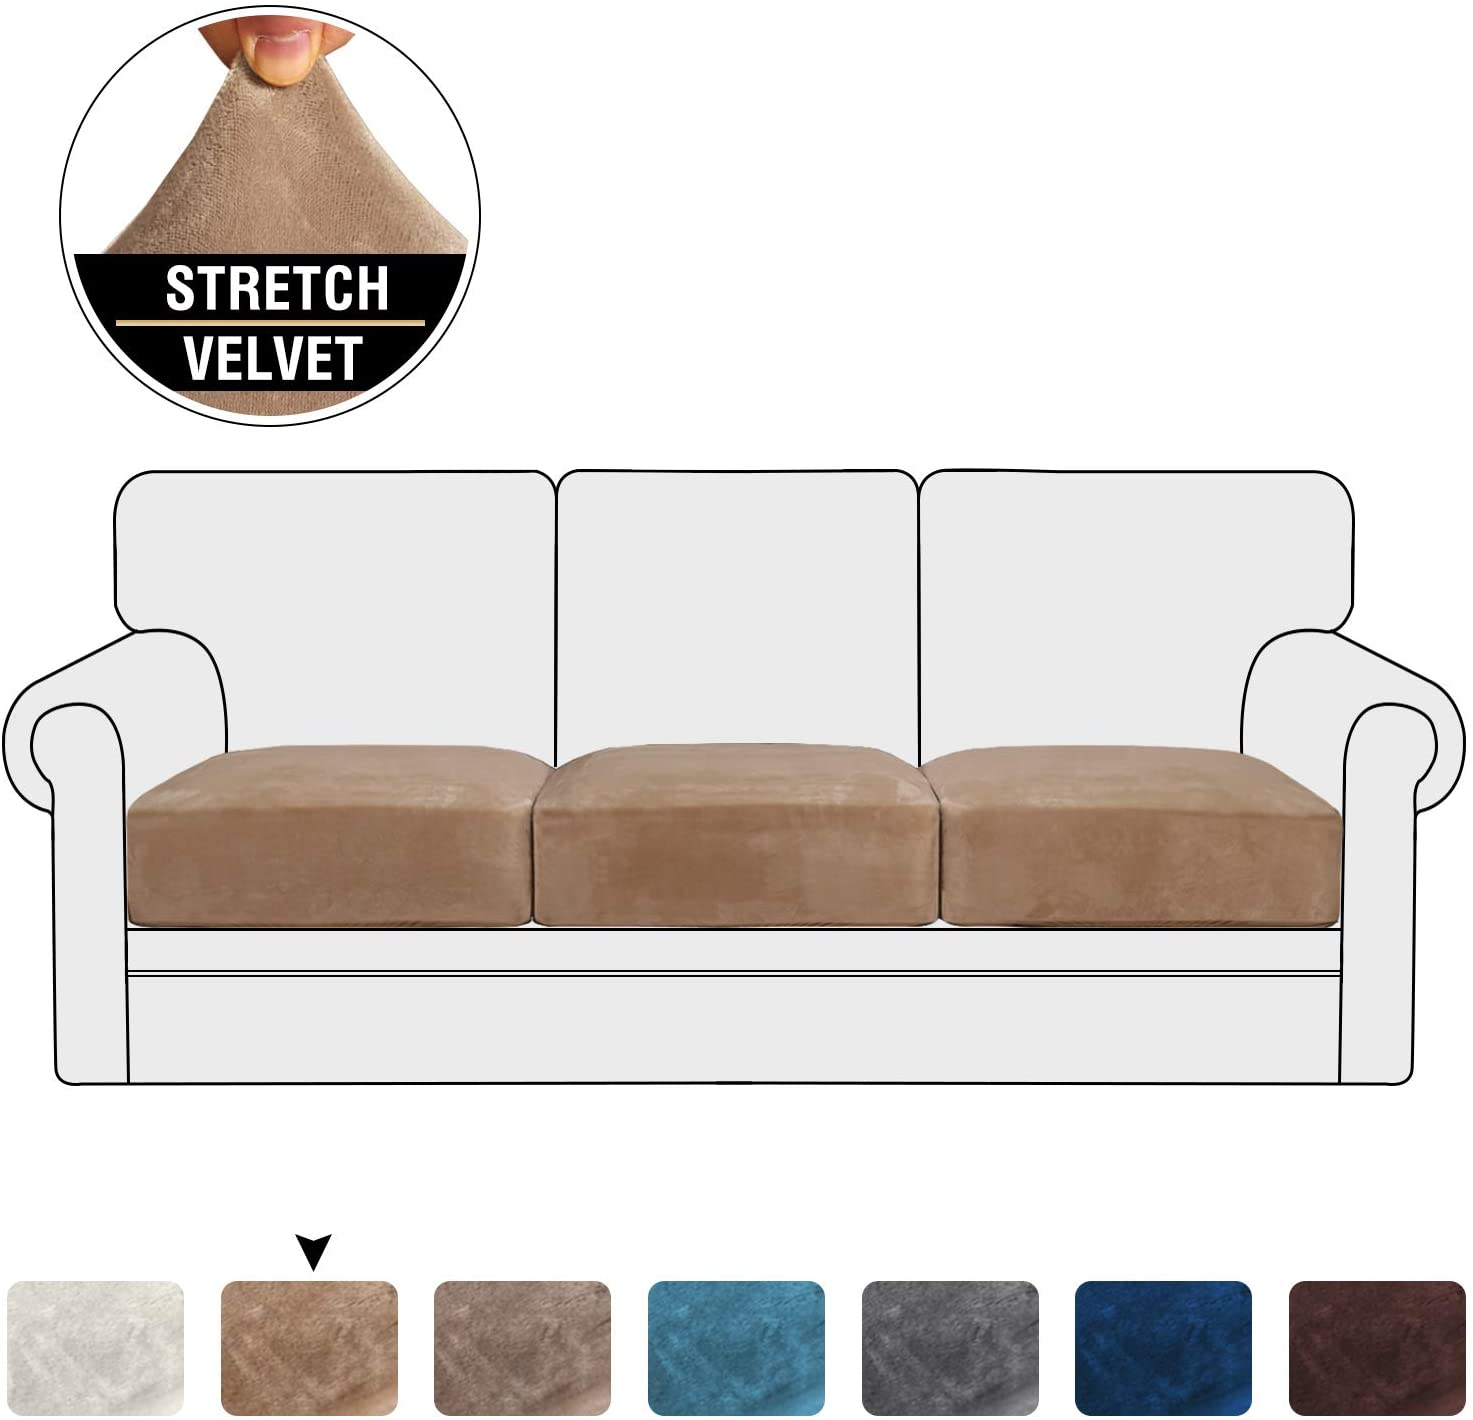 Stretch Velvet Couch Cushion Covers for Individual Cushions Sofa Cushion Covers Seat Cushion Covers, Thicker Bouncy with Elastic Edge Cover up to 10 Inch Thickness Cushions (3 Pieces, Camel)